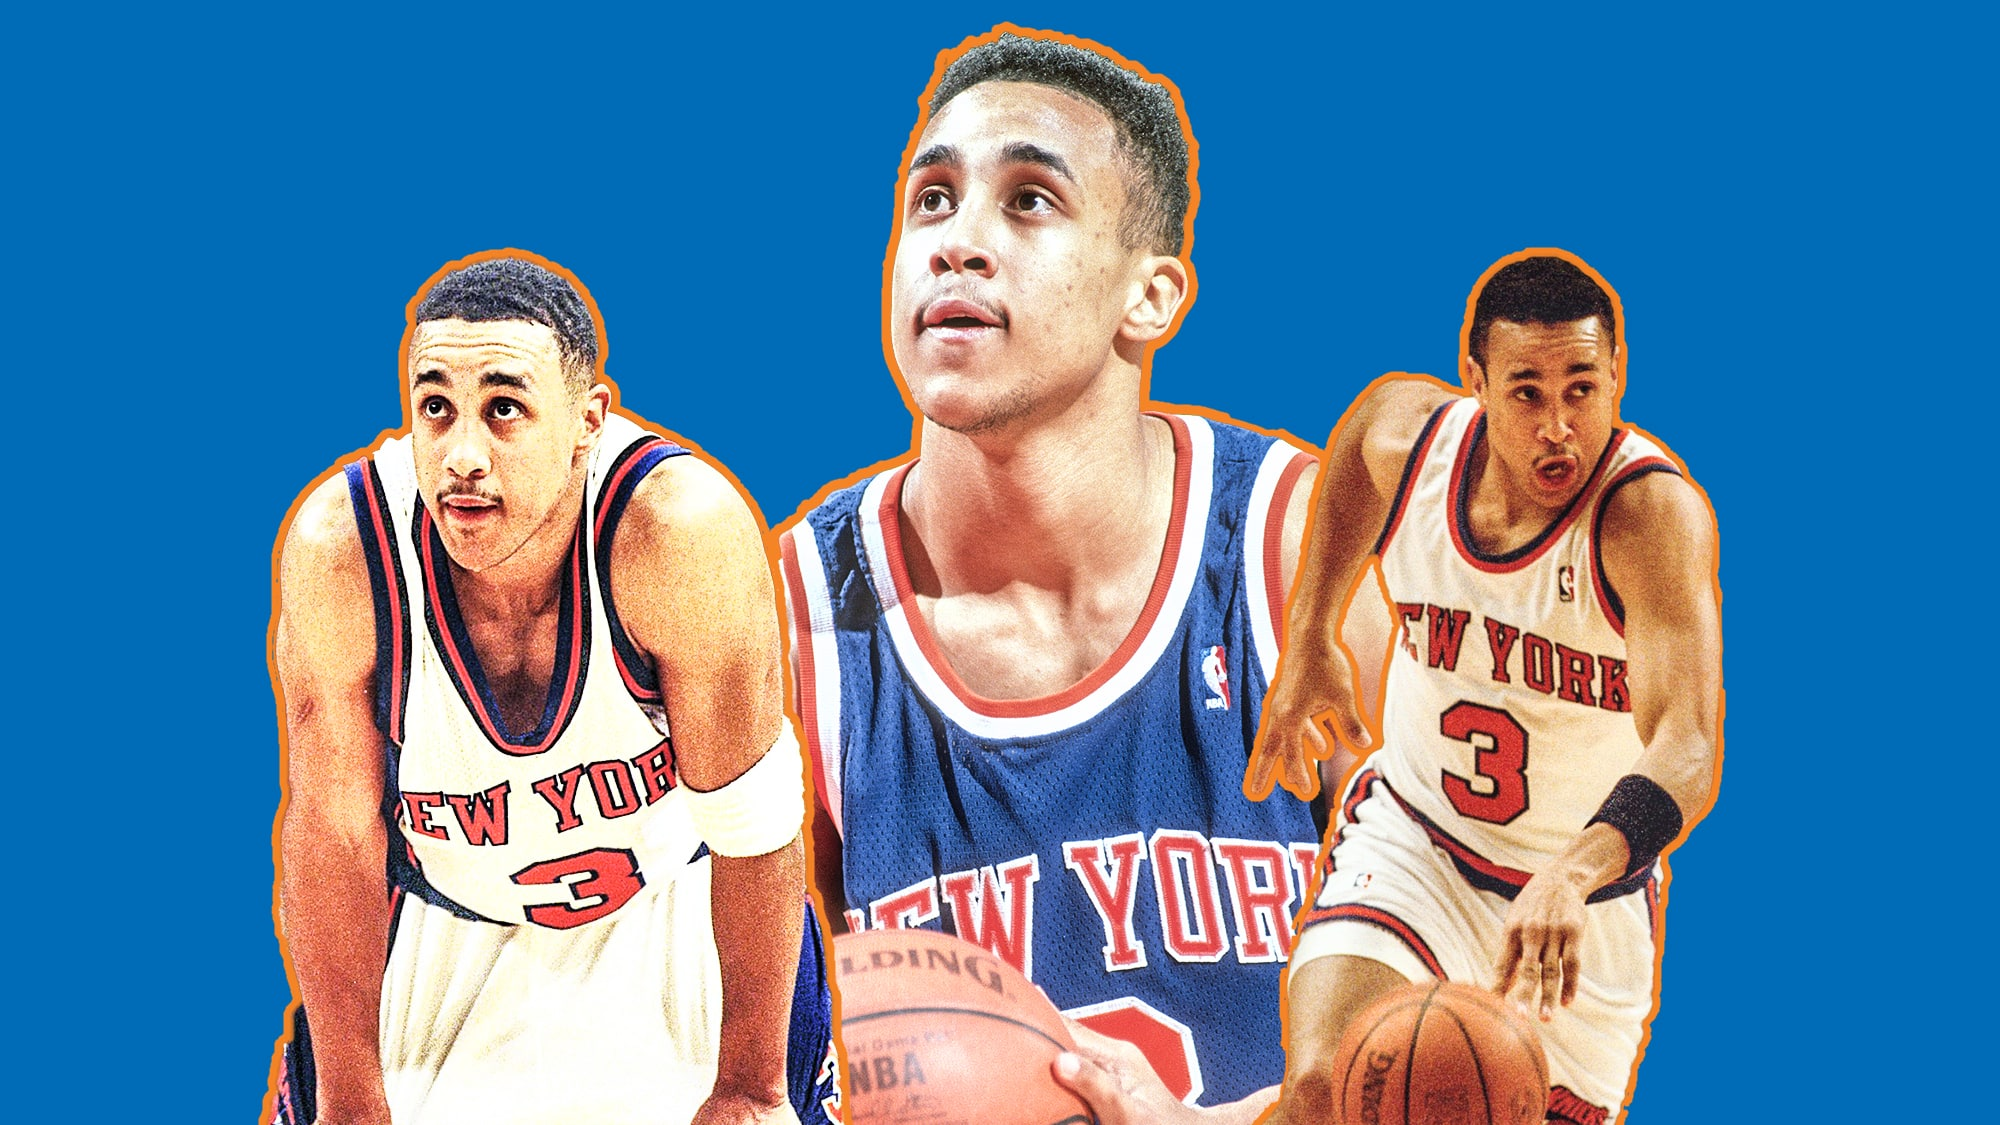 7bab9bbb514 New York Knicks: 5 videos to binge on YouTube this offseason